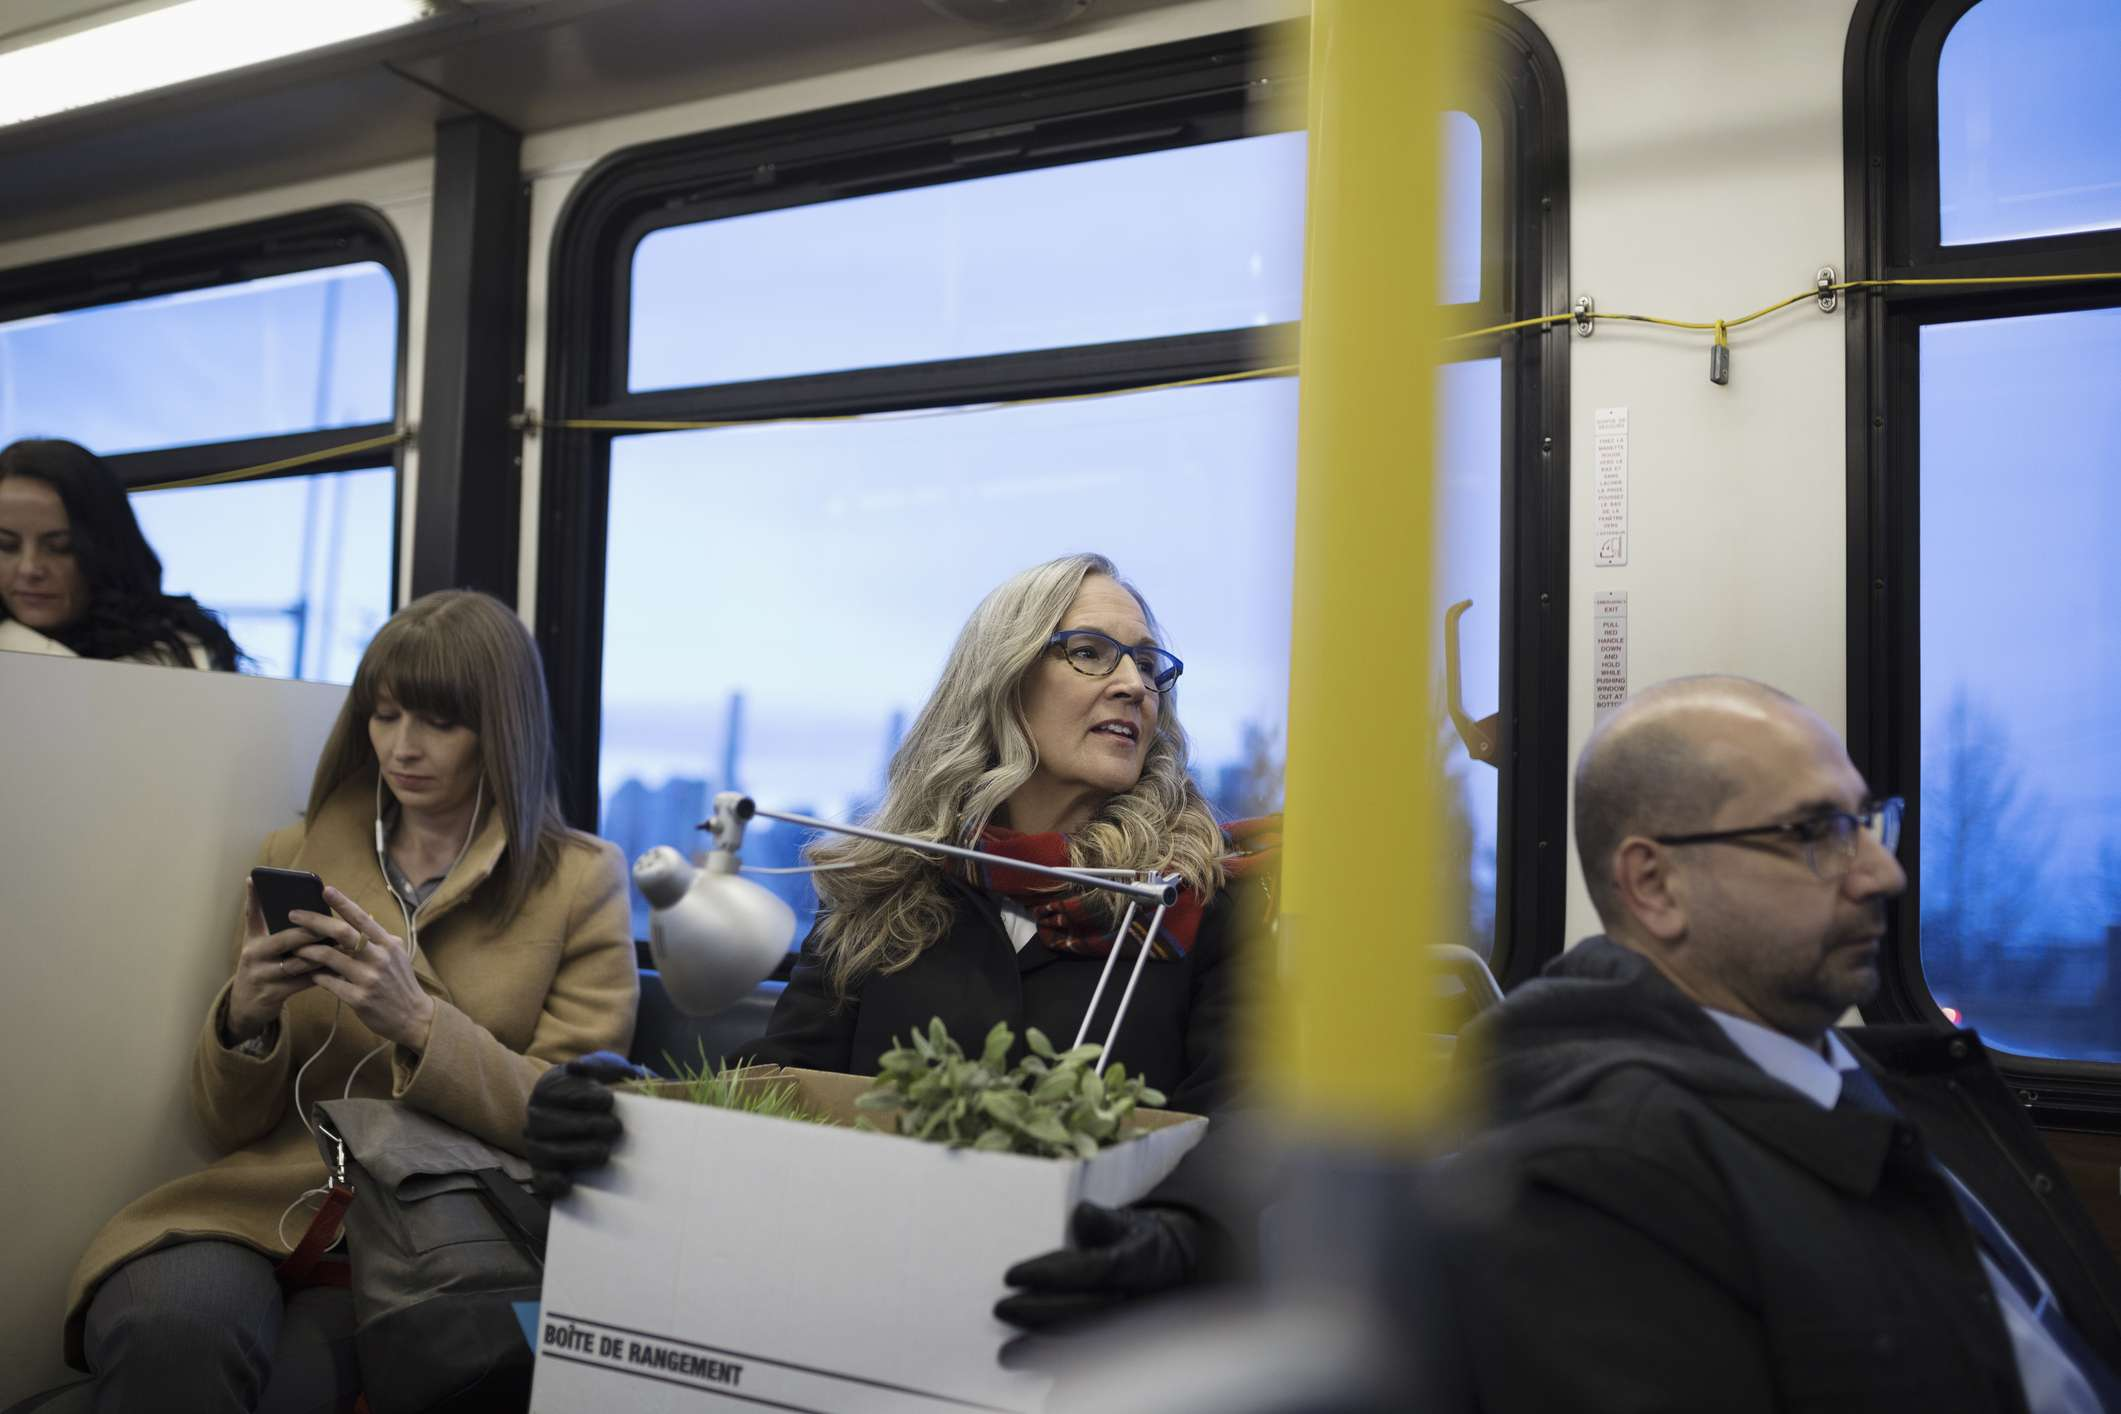 Laid-off businesswoman commuter riding bus with box of belongings